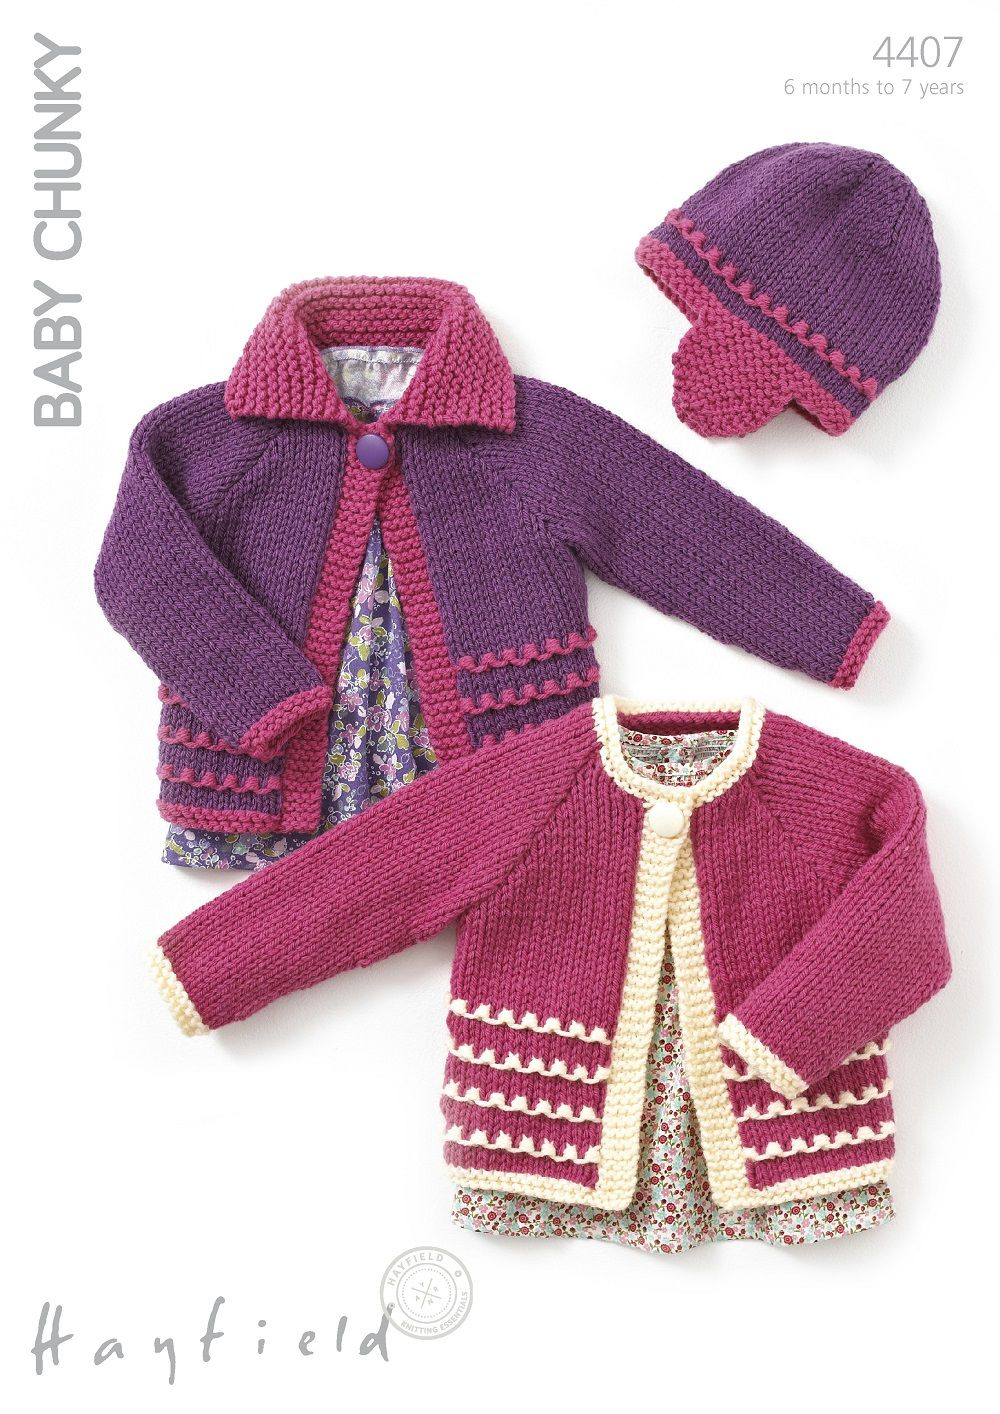 Hayfield Babies/Childrens Cardigans & Hat Knitting Pattern in Baby Chunky  (4407P) PDF